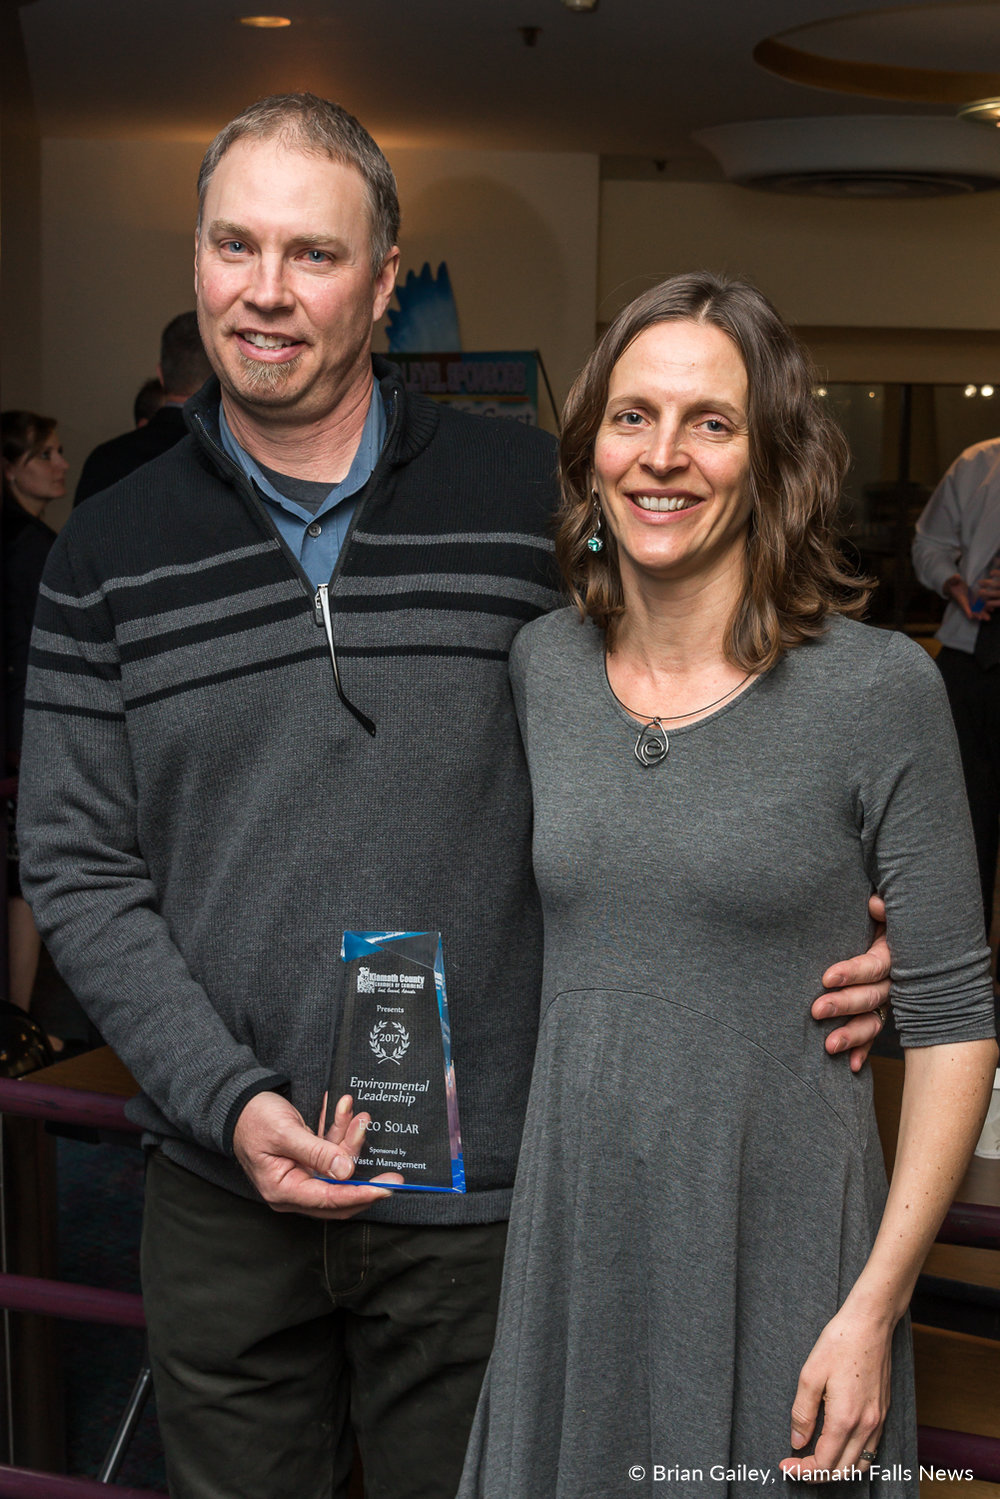 Eco Solar stands with their award following the 97th Annual Chamber Gala Awards. (Brian Gailey)